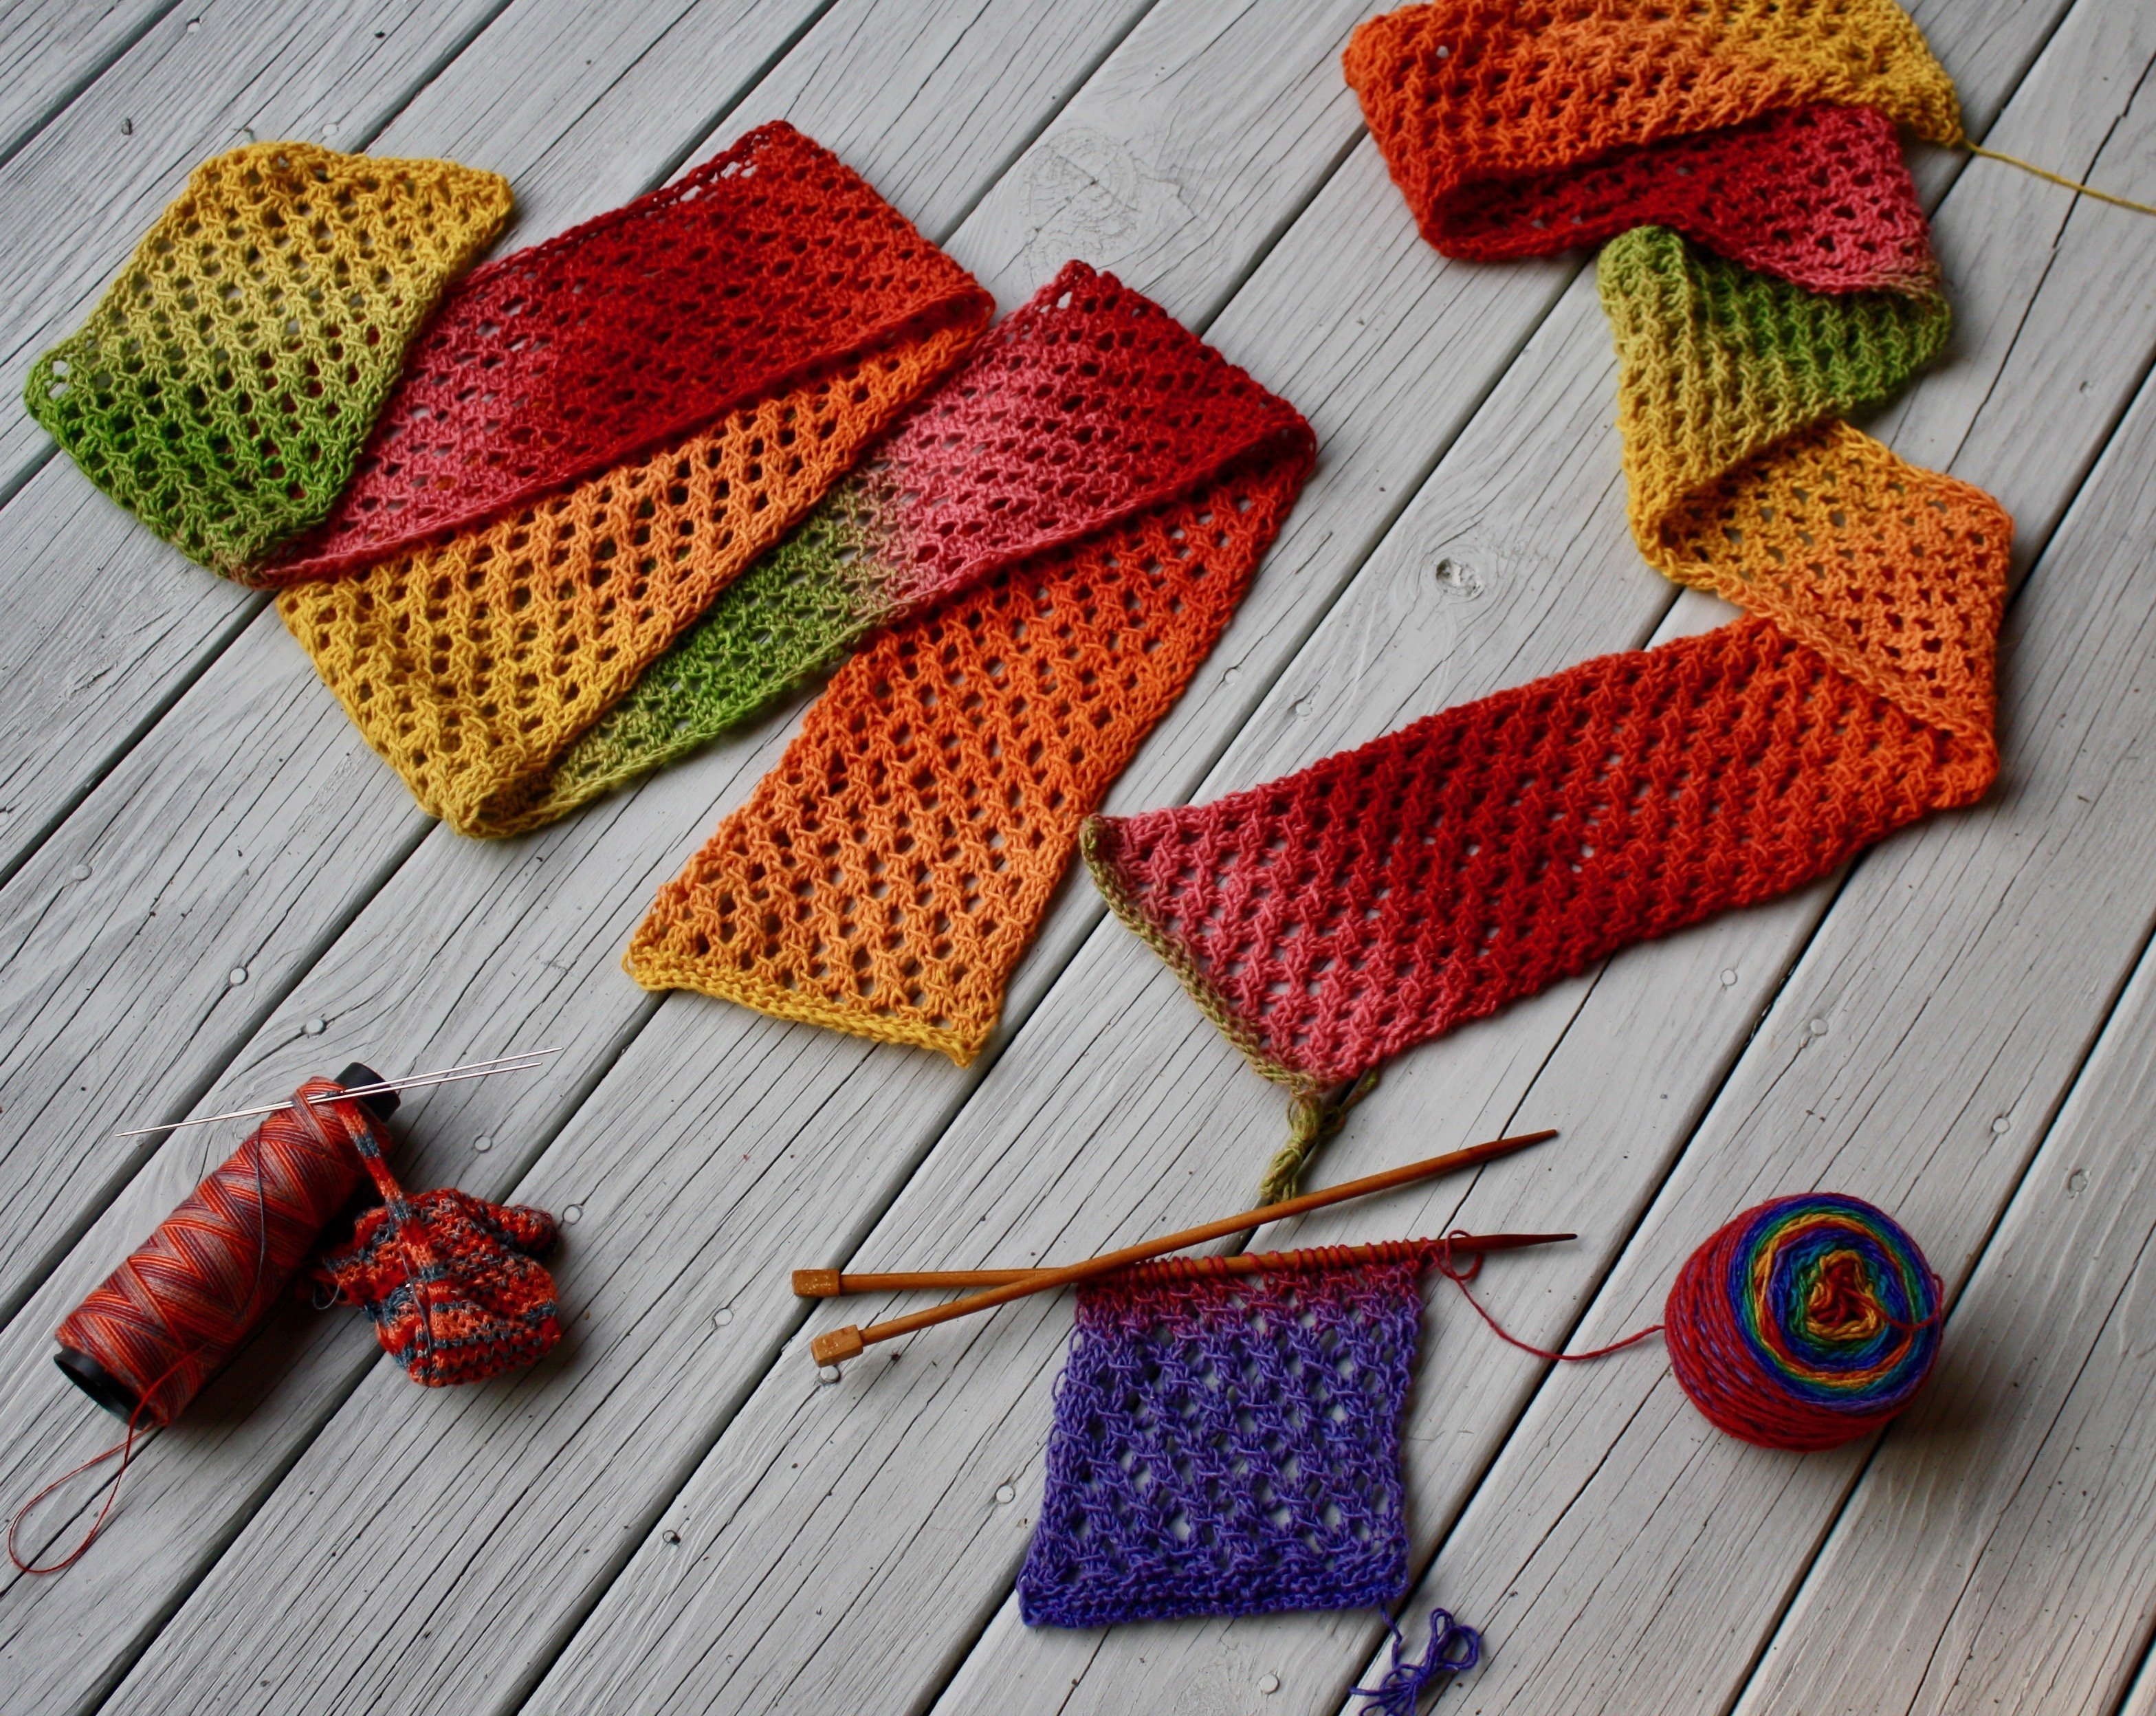 Blessed with color Mesh knitting 07-10-19